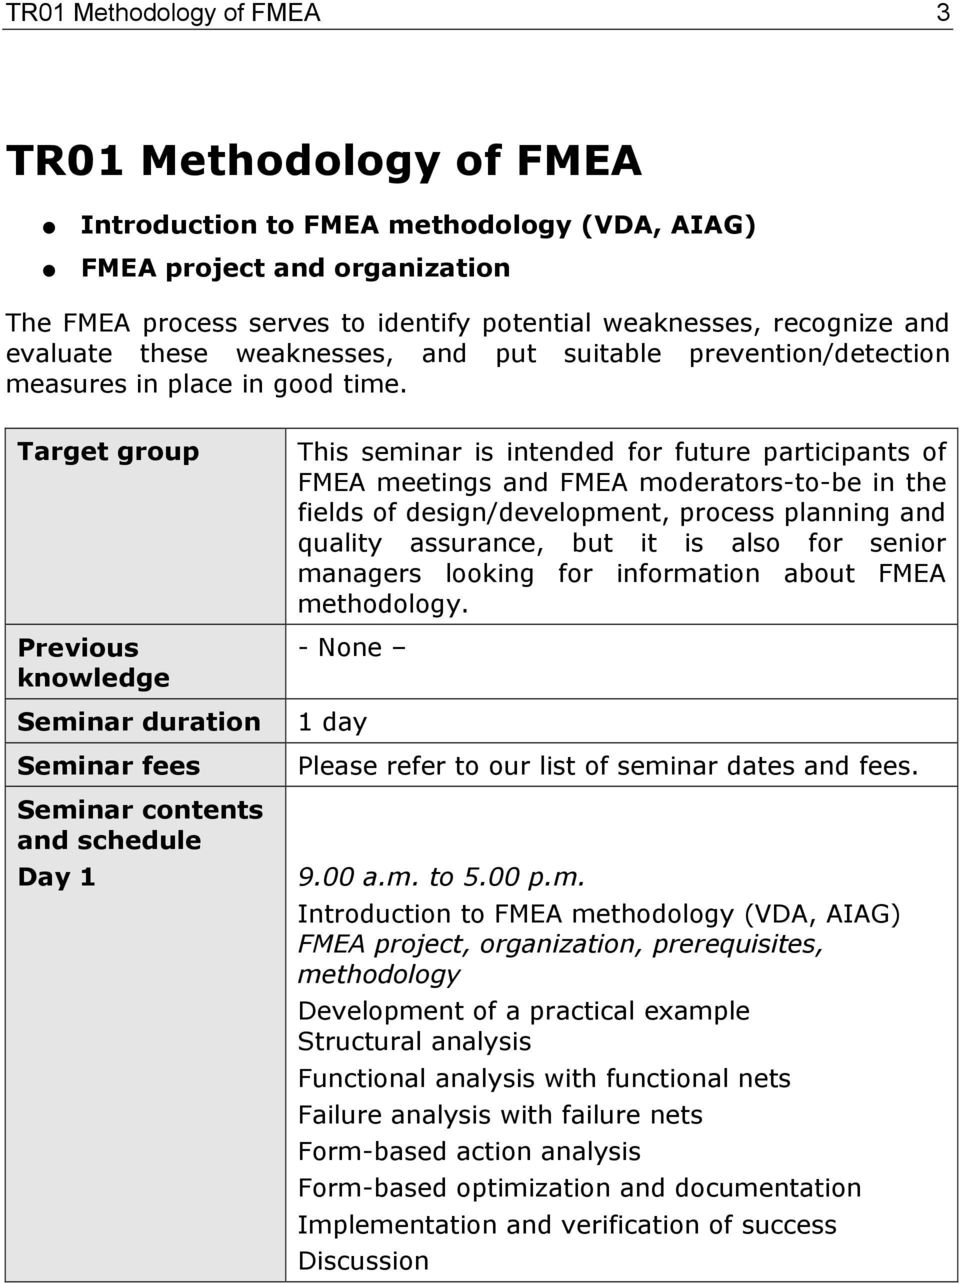 Target group Previous knowedge Seminar duration Seminar fees Seminar contents and schedue Day 1 This seminar is intended for future participants of FMEA meetings and FMEA moderators-to-be in the